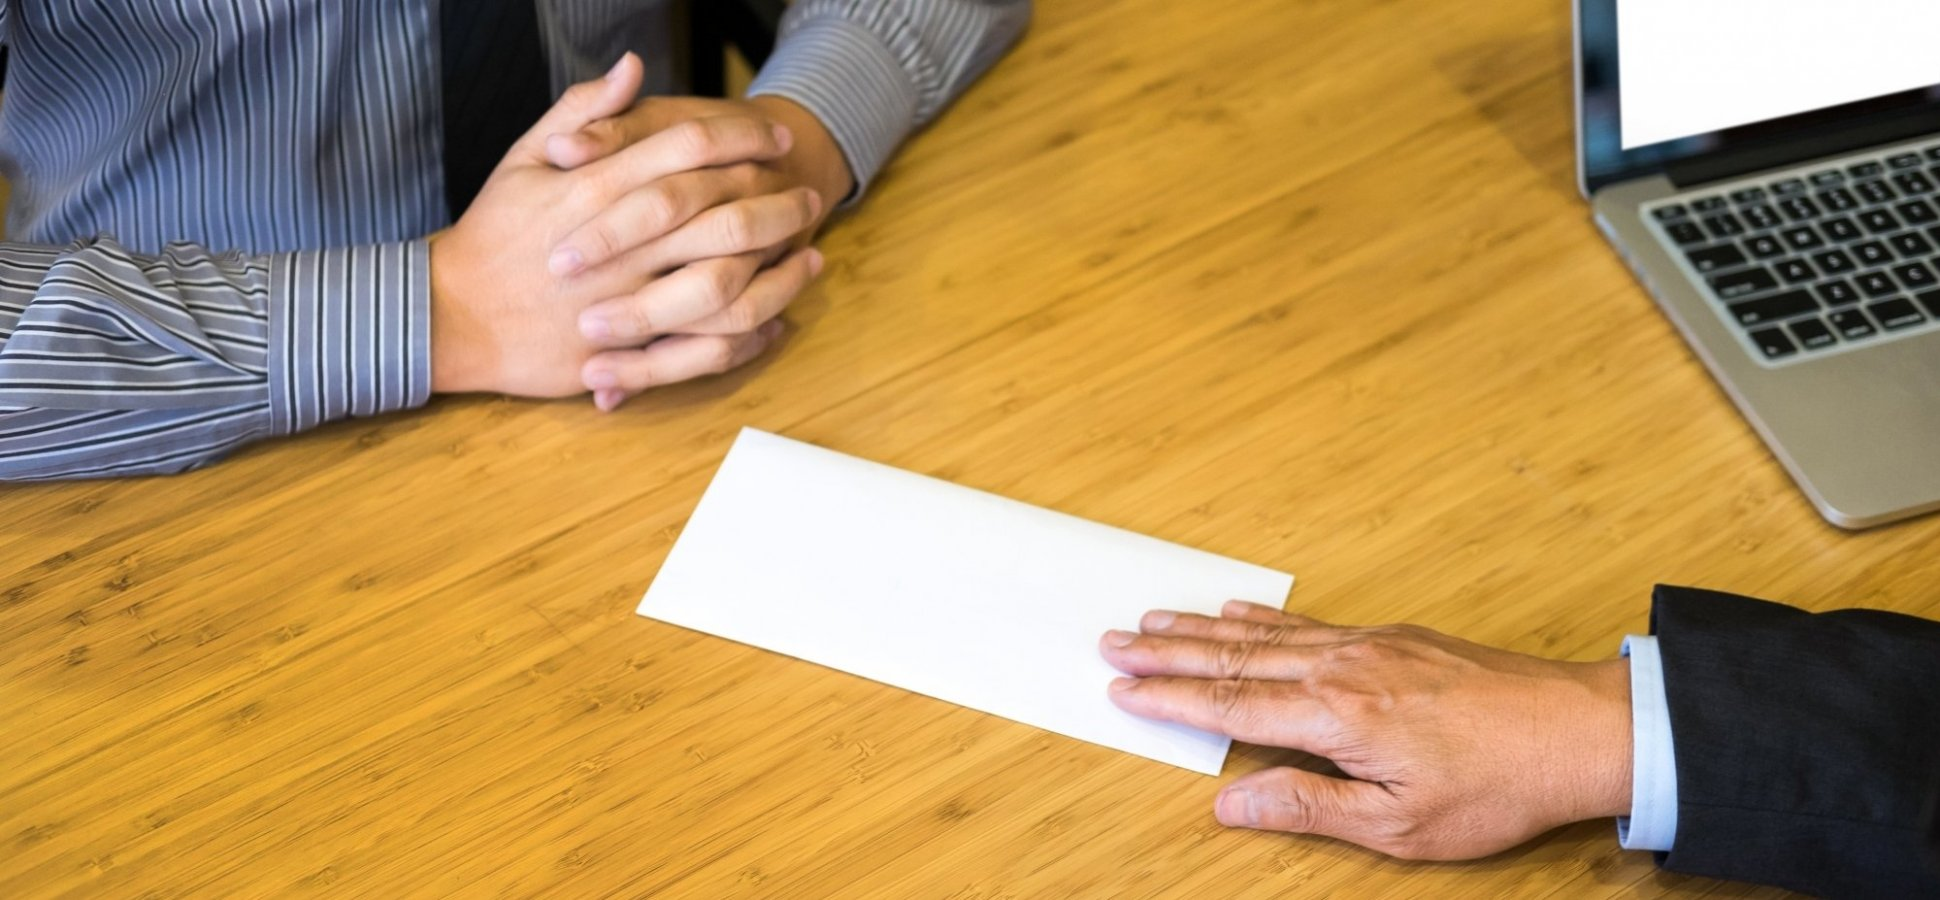 How to Write a Resignation Letter, According to an HR Expert (Hint: Here's the Best Example He Saw in His 20 Years of Experience)